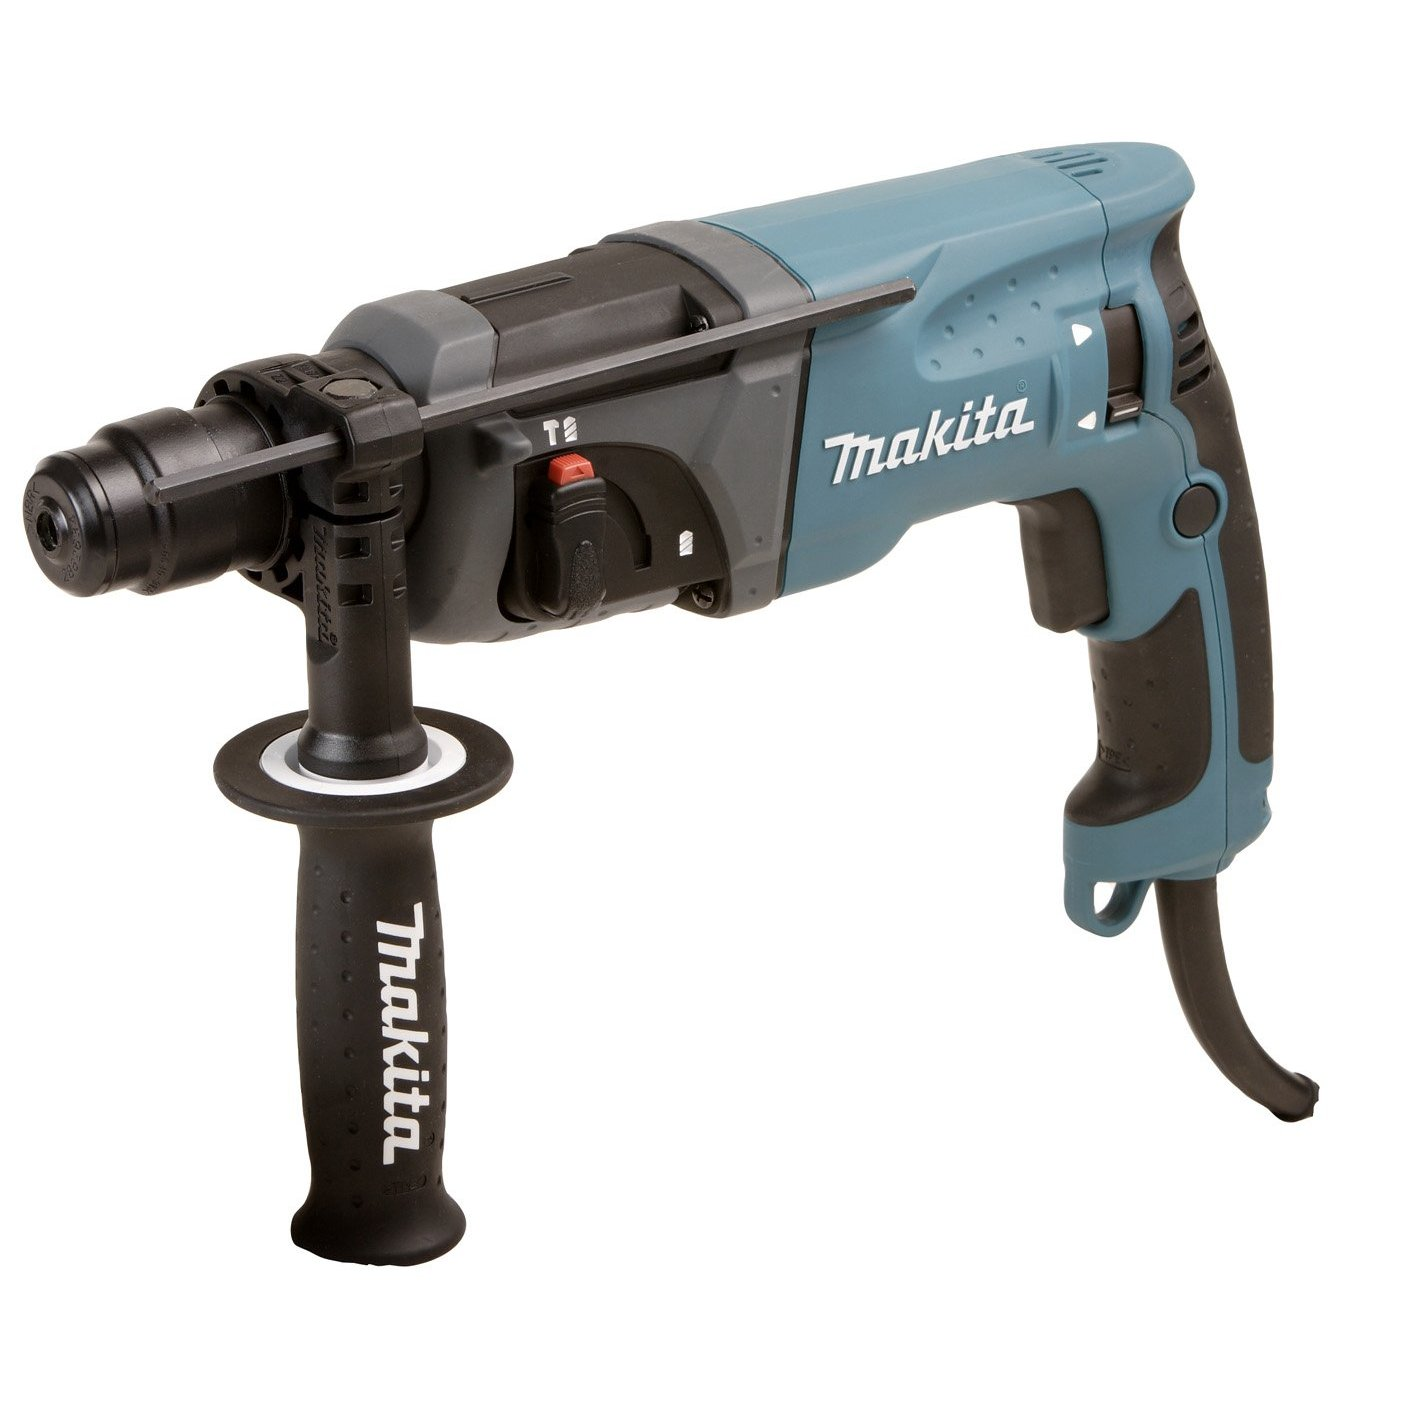 Makita-HR-2460-SDS-Plus-Bohrhammer